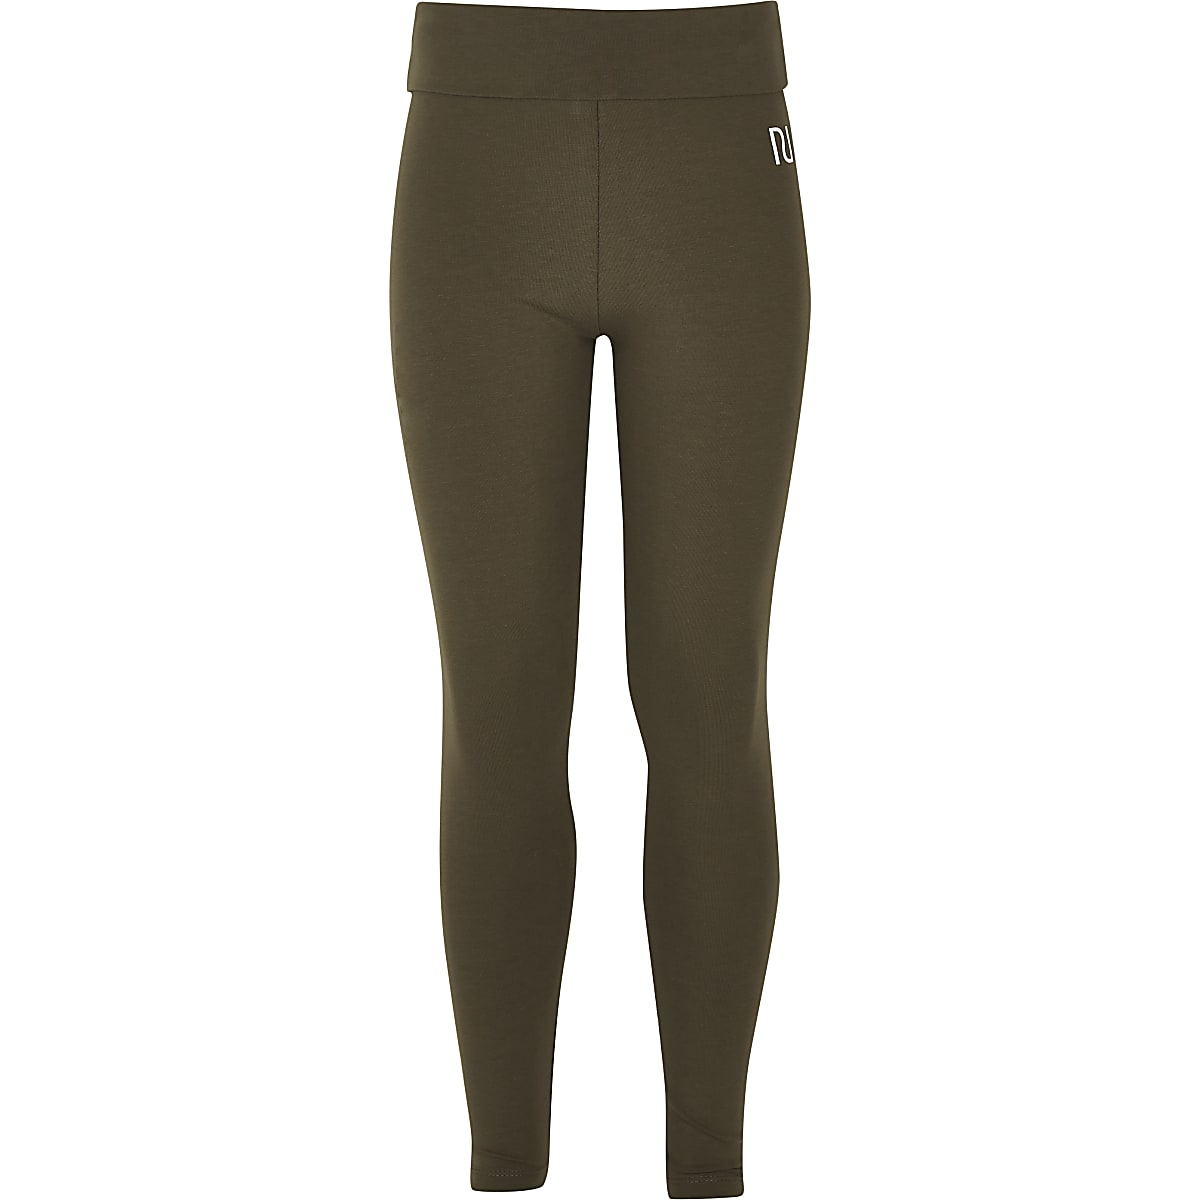 Girls khaki fold over leggings